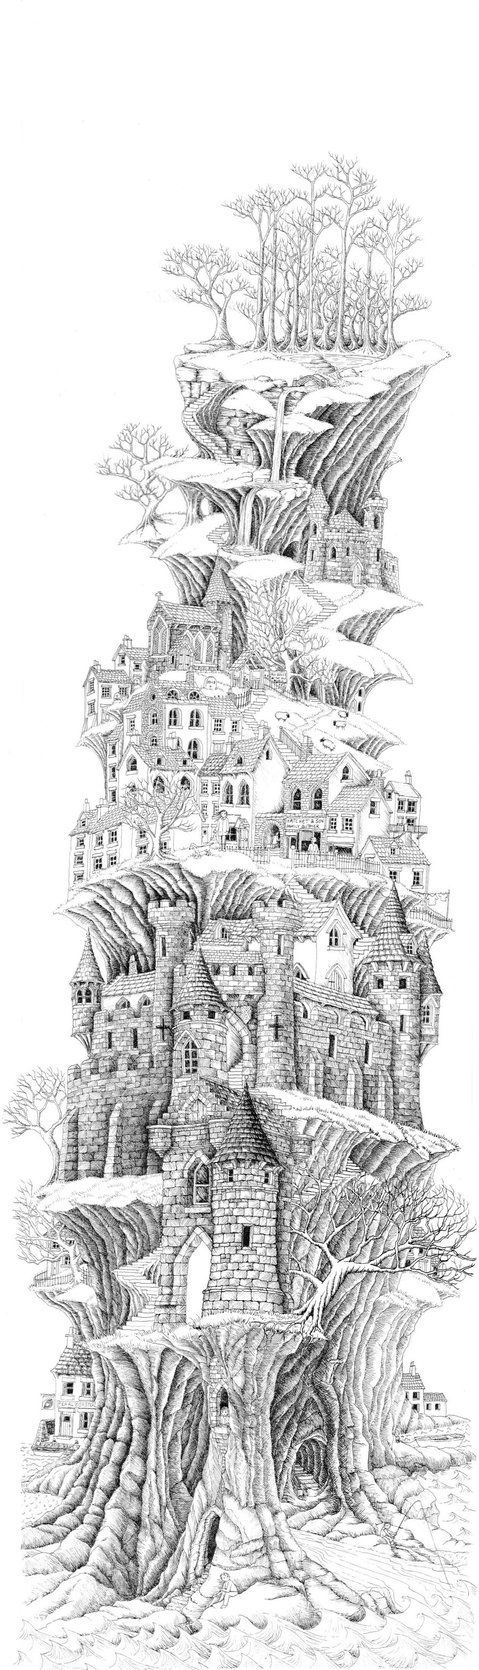 Coloring pages for adults tree - Incredible Coloring Page Perfect For Adults One Of The Most Elaborate And Detailed Pictures I